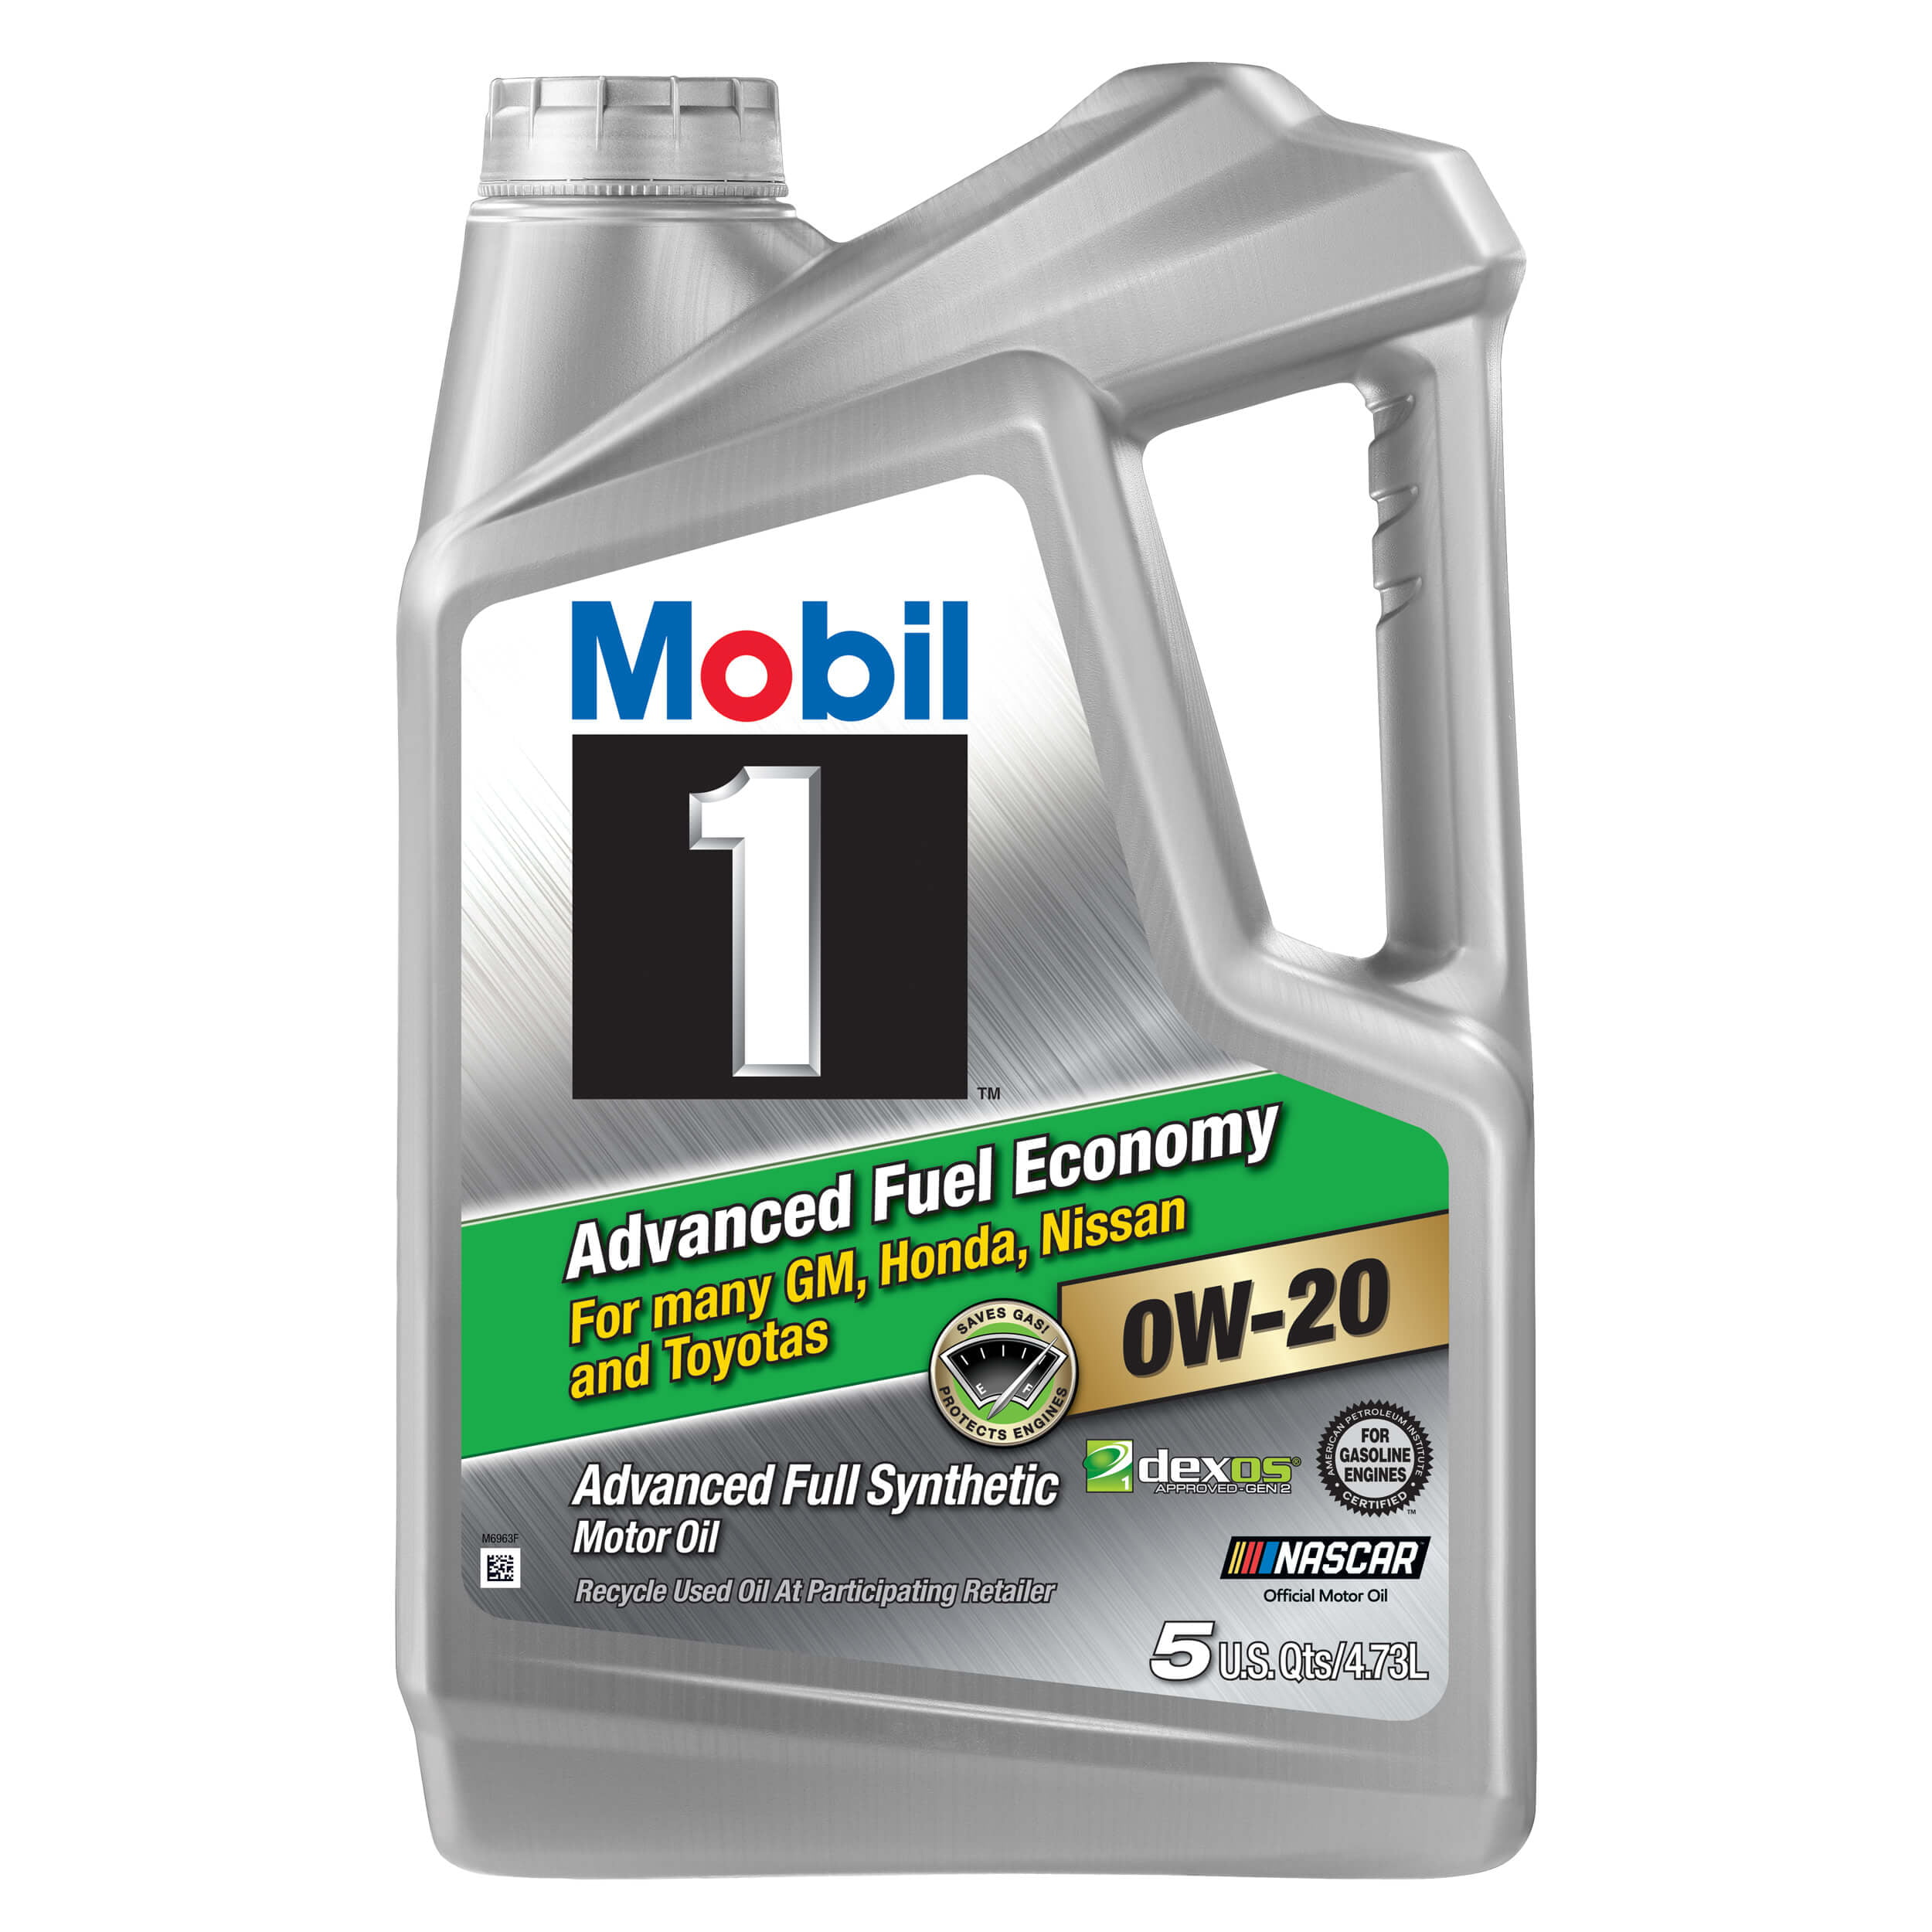 Mobil 1 Advanced Fuel Economy Full Synthetic Motor Oil 0W-20, 5-qt